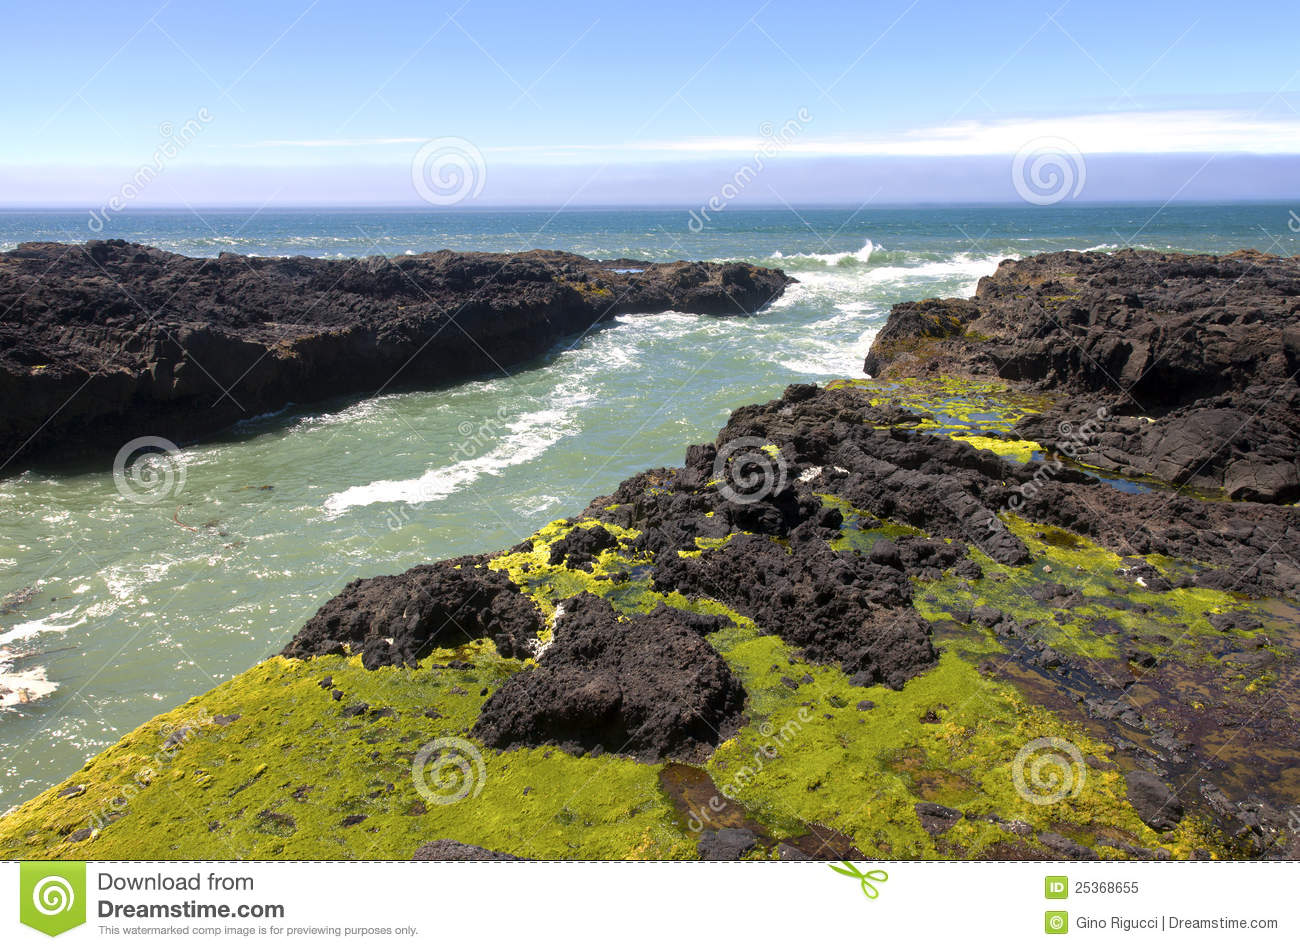 map of orgeon with Royalty Free Stock Photo Rocky Lava Shoreline Oregon Coast Image25368655 on Red Hill2 l moreover oros Satellite Image together with 508037931 as well Aquifers Groundwater also Or Malin.